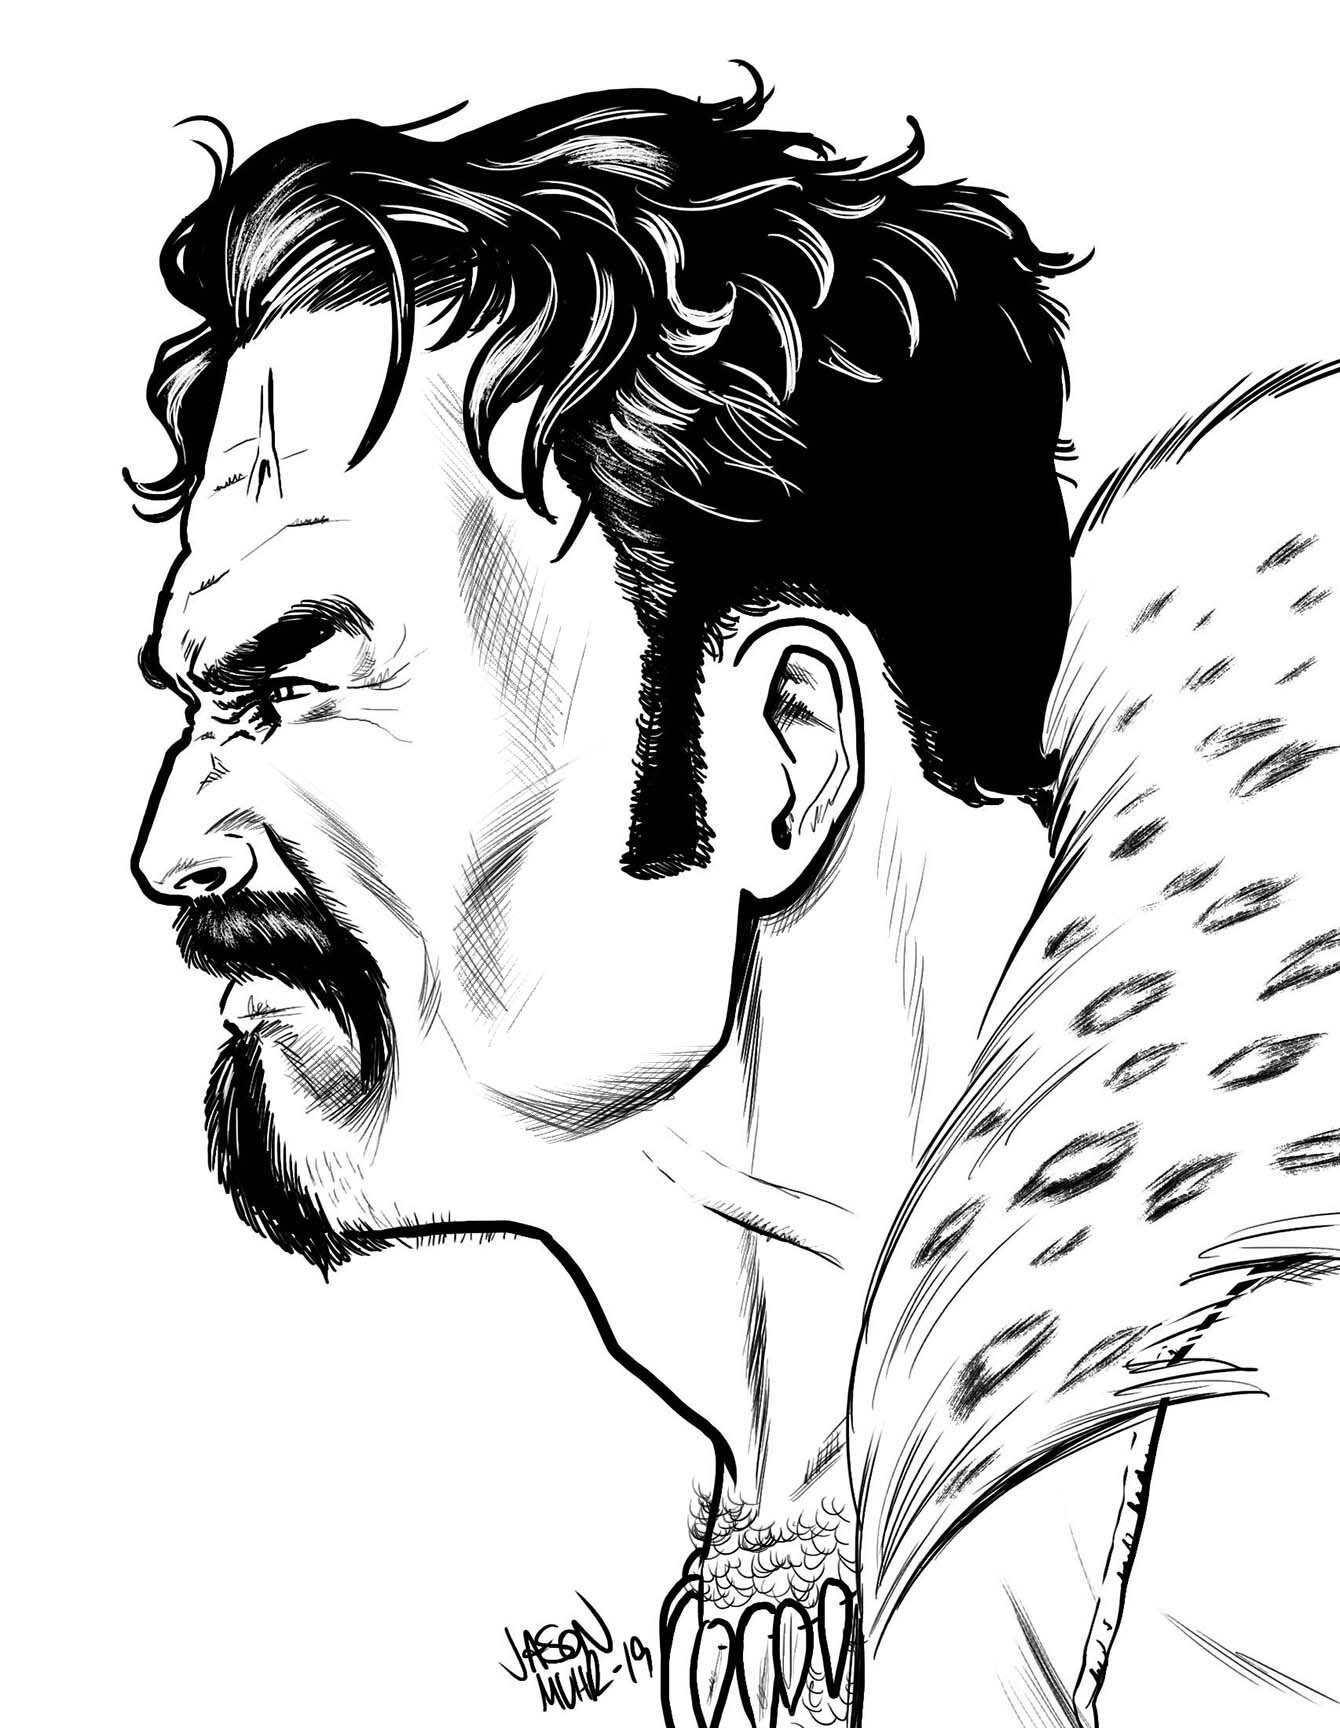 Kraven_The_Hunter_jason_muhr.jpg